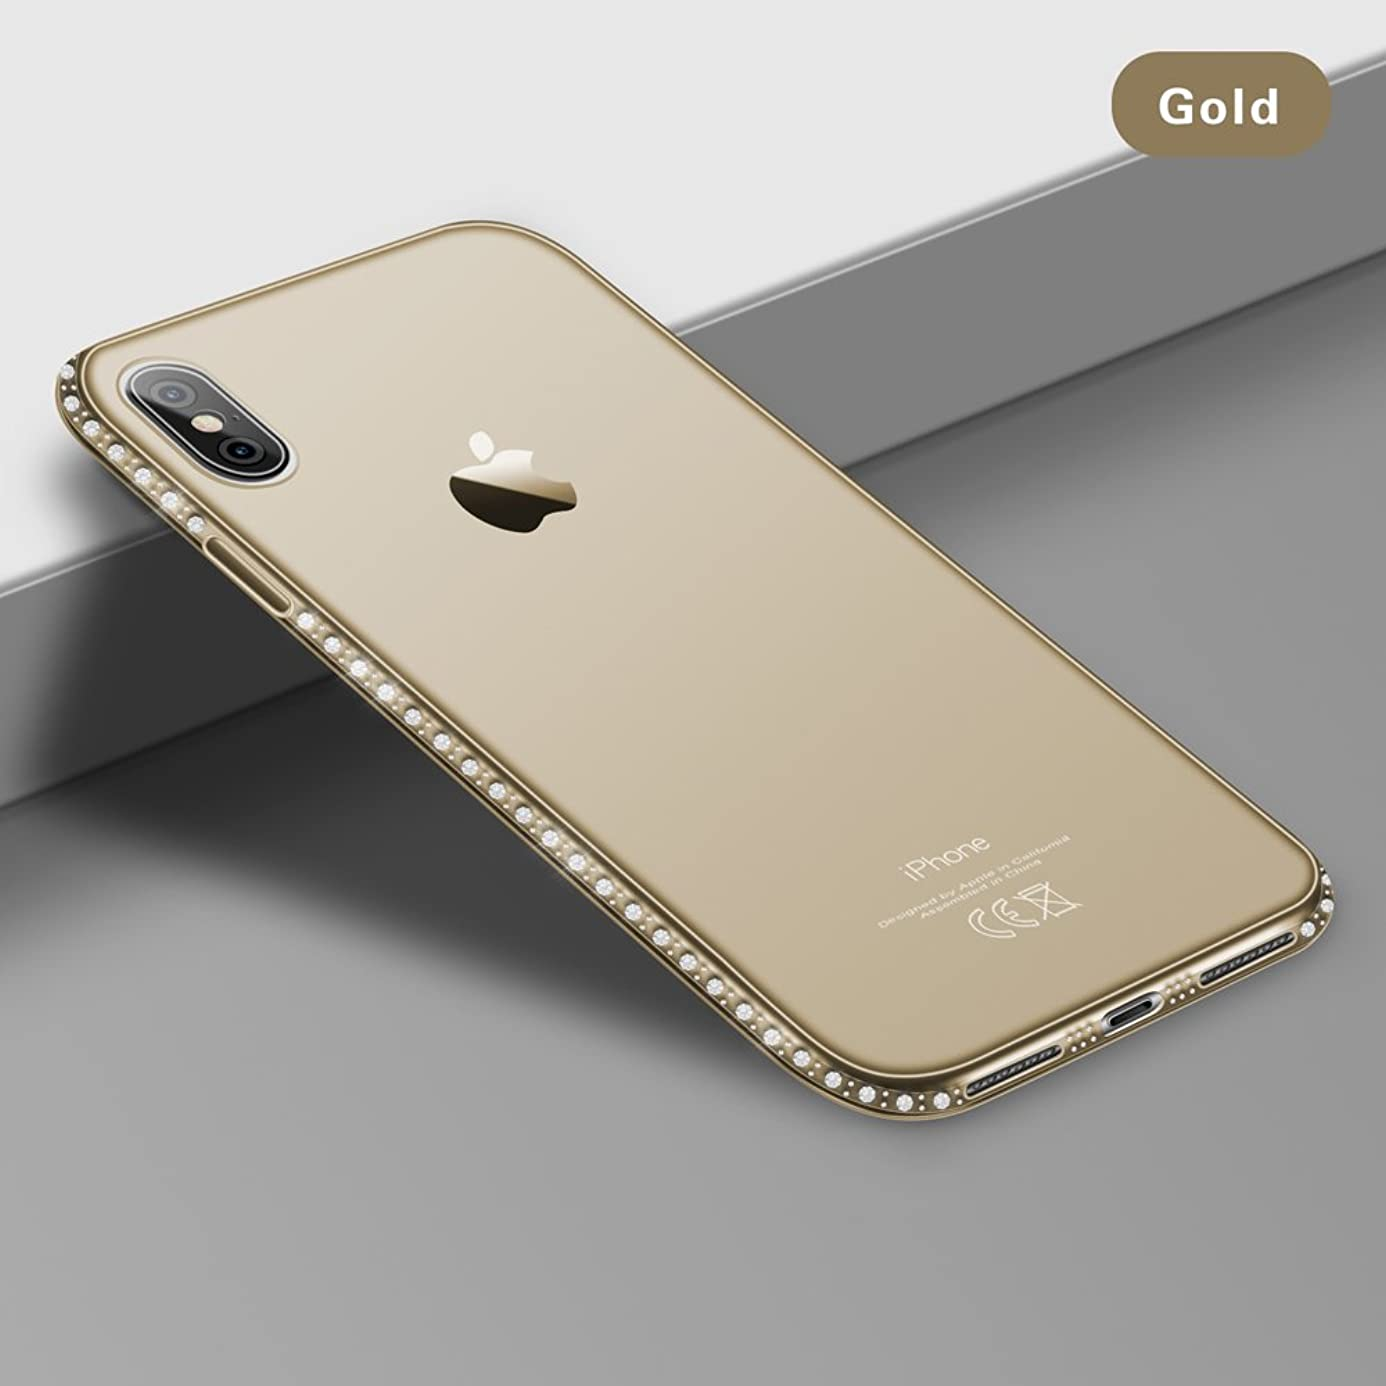 Fitted Cases - Diamond Bling Transparent Phone Case Cover For Iphone 6 6s 8 7 Plus Soft Tpu Clear Cover For Iphone X Xr Xs Max 5 5s - For Iphone 5 5s Se Gold - Tv Running Blackview Silver